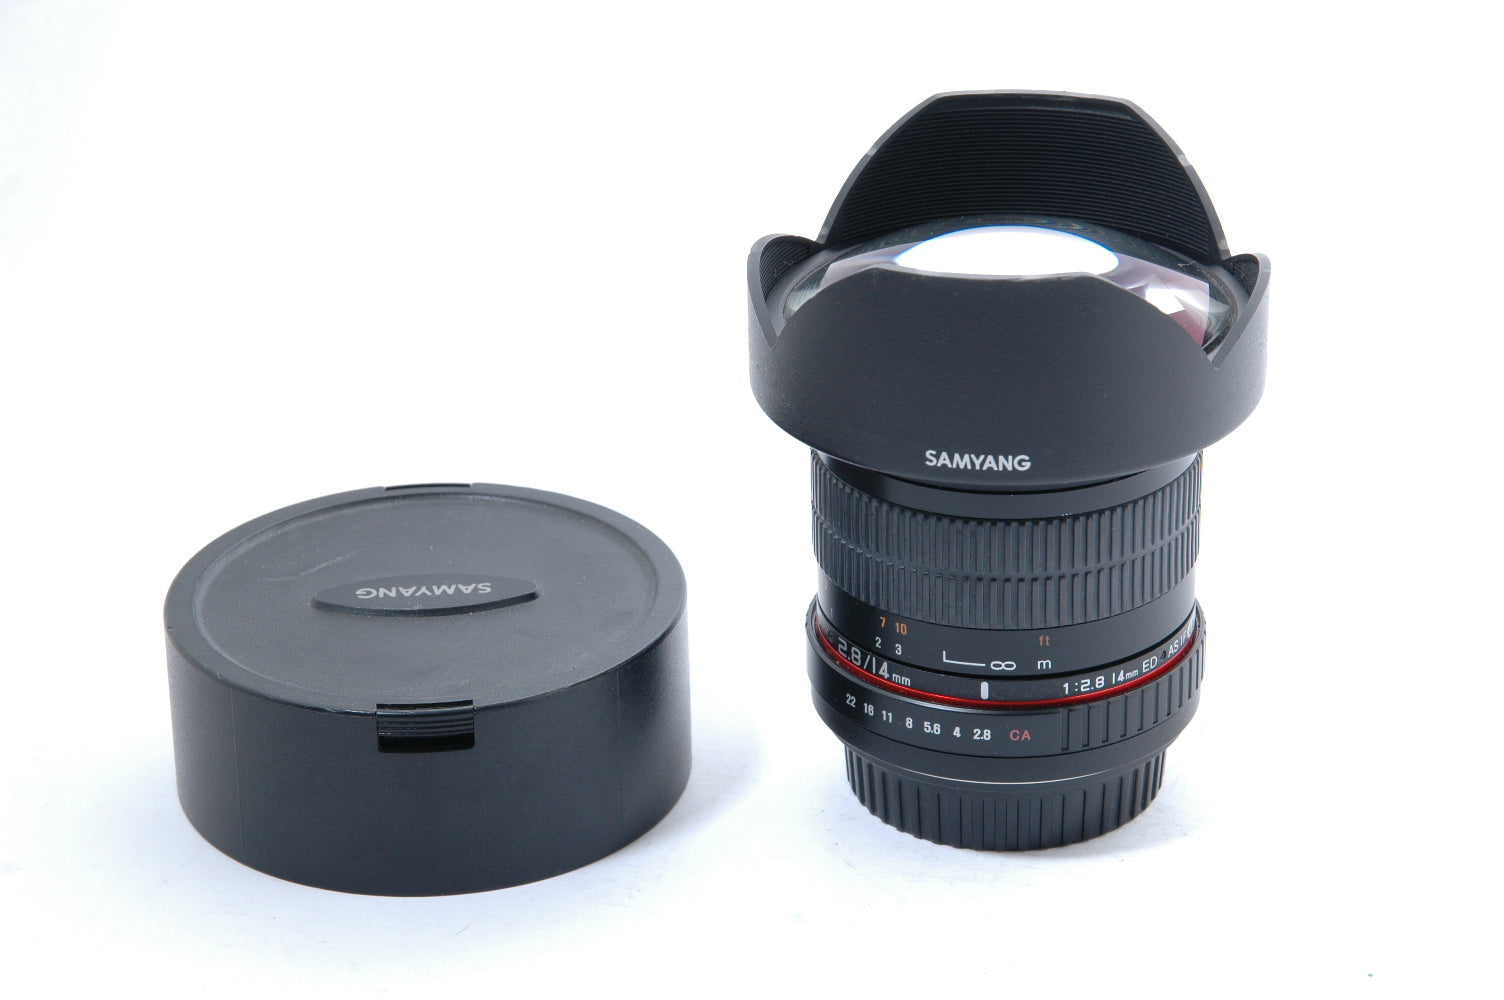 Samyang 14mm F2.8 ED AS IF UMC Prime Len - Canon Fit